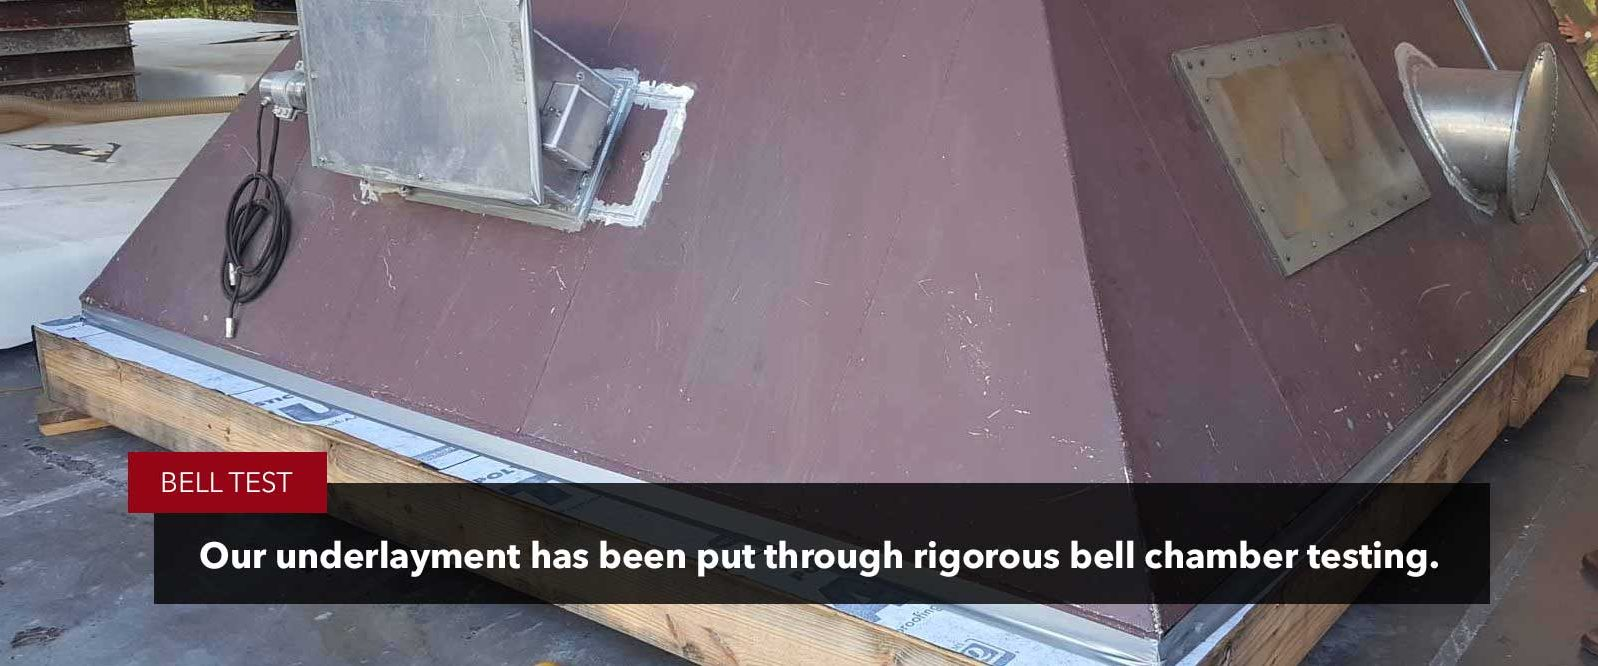 bell chamber tested underlayment